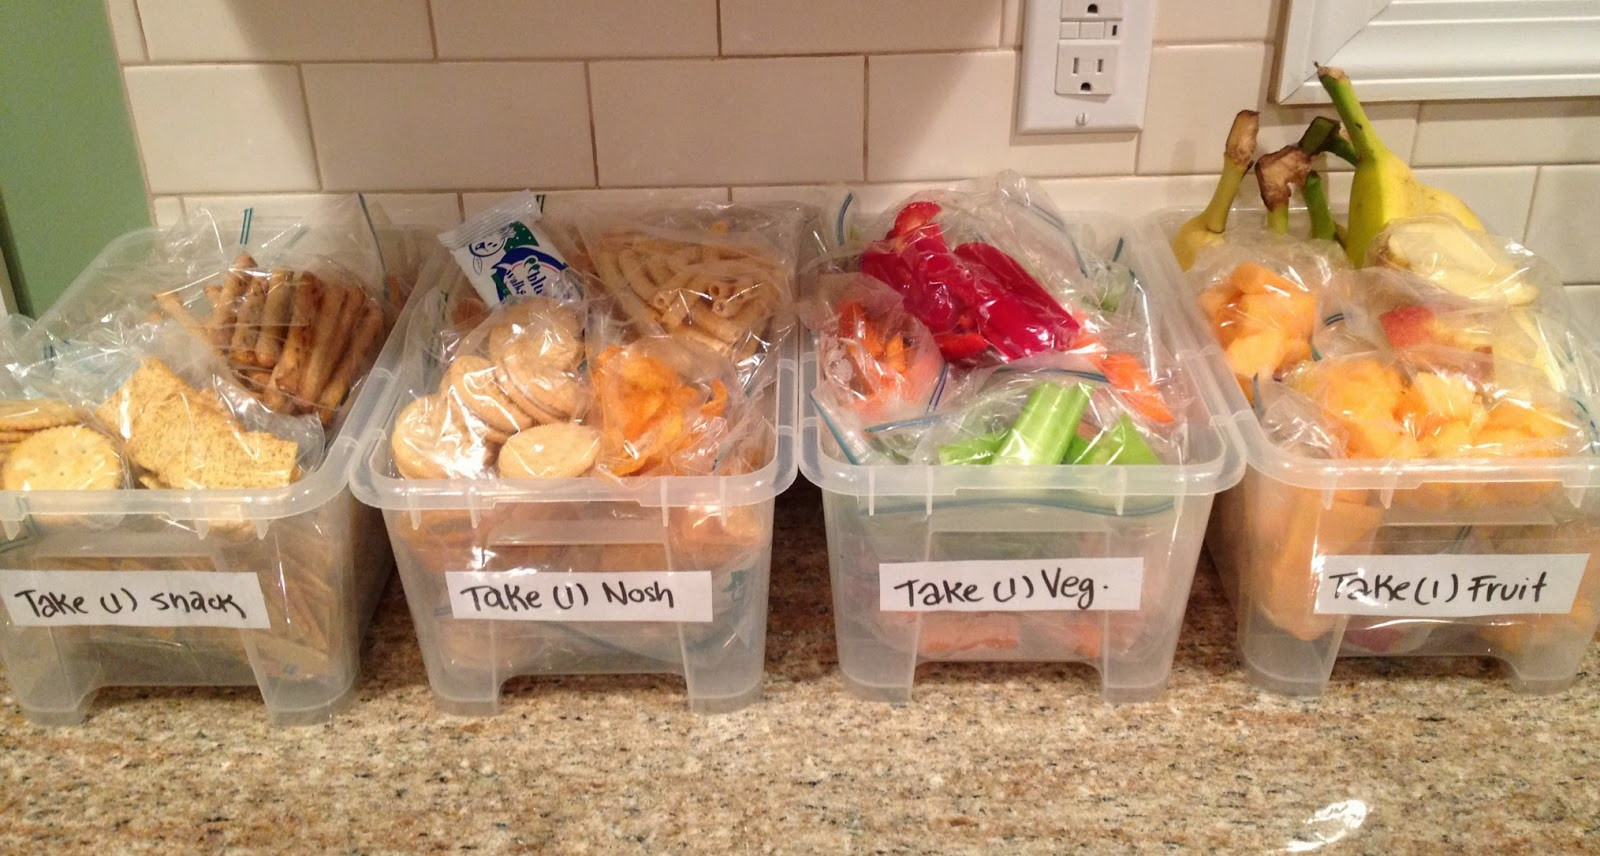 Healthy Lunch Snacks  Not 2 Shabbey Healthy Kosher Snack & Lunch Ideas